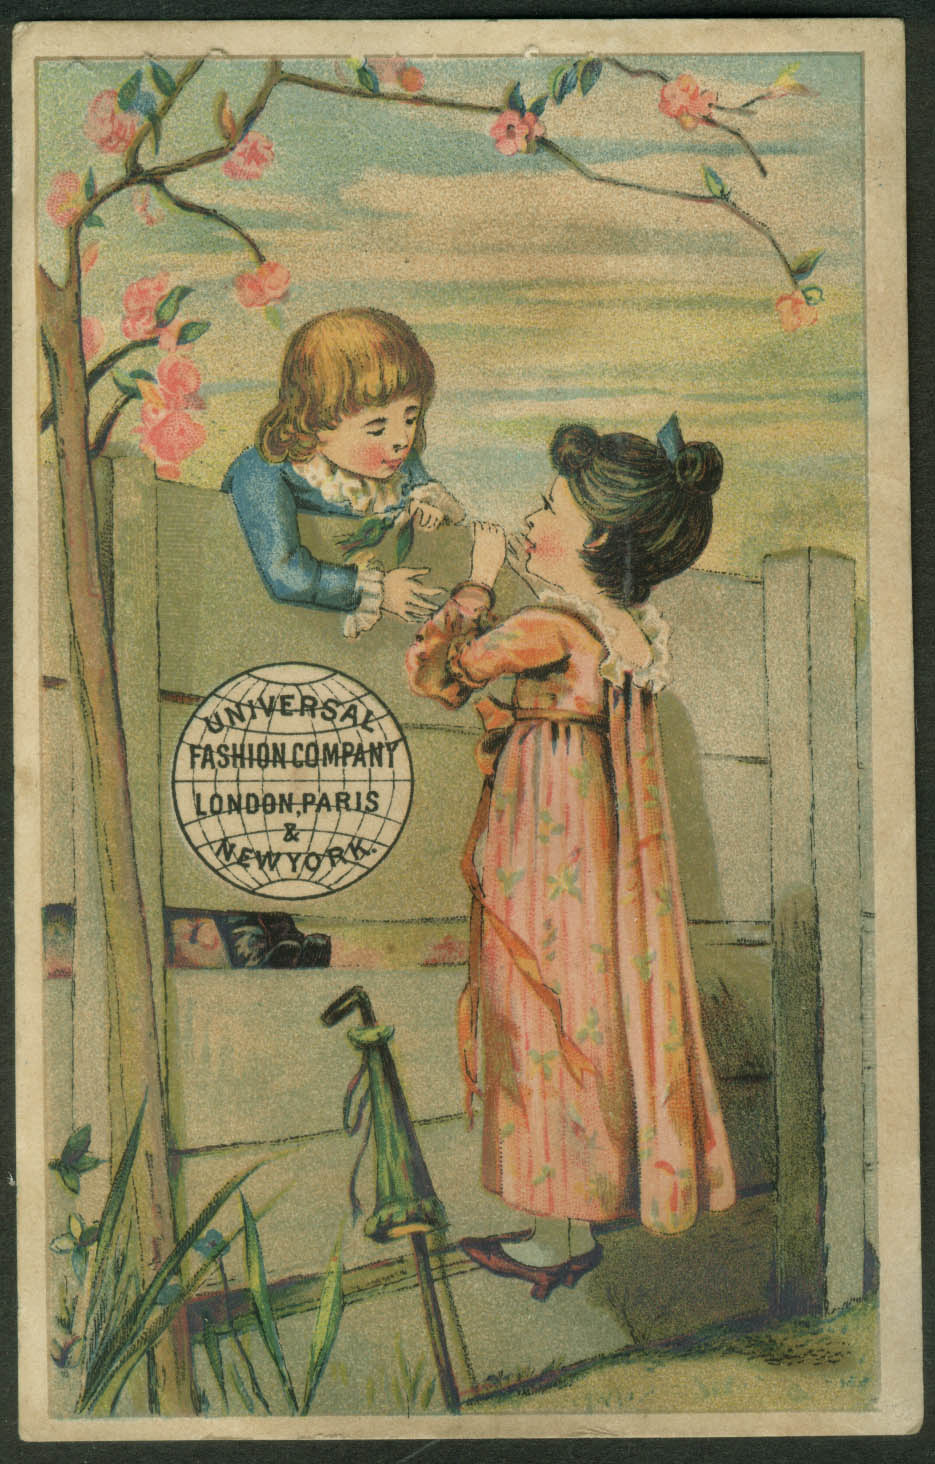 Blake & Maxson Piano Organ Westerly RI Universal Pattern trade card 1880s